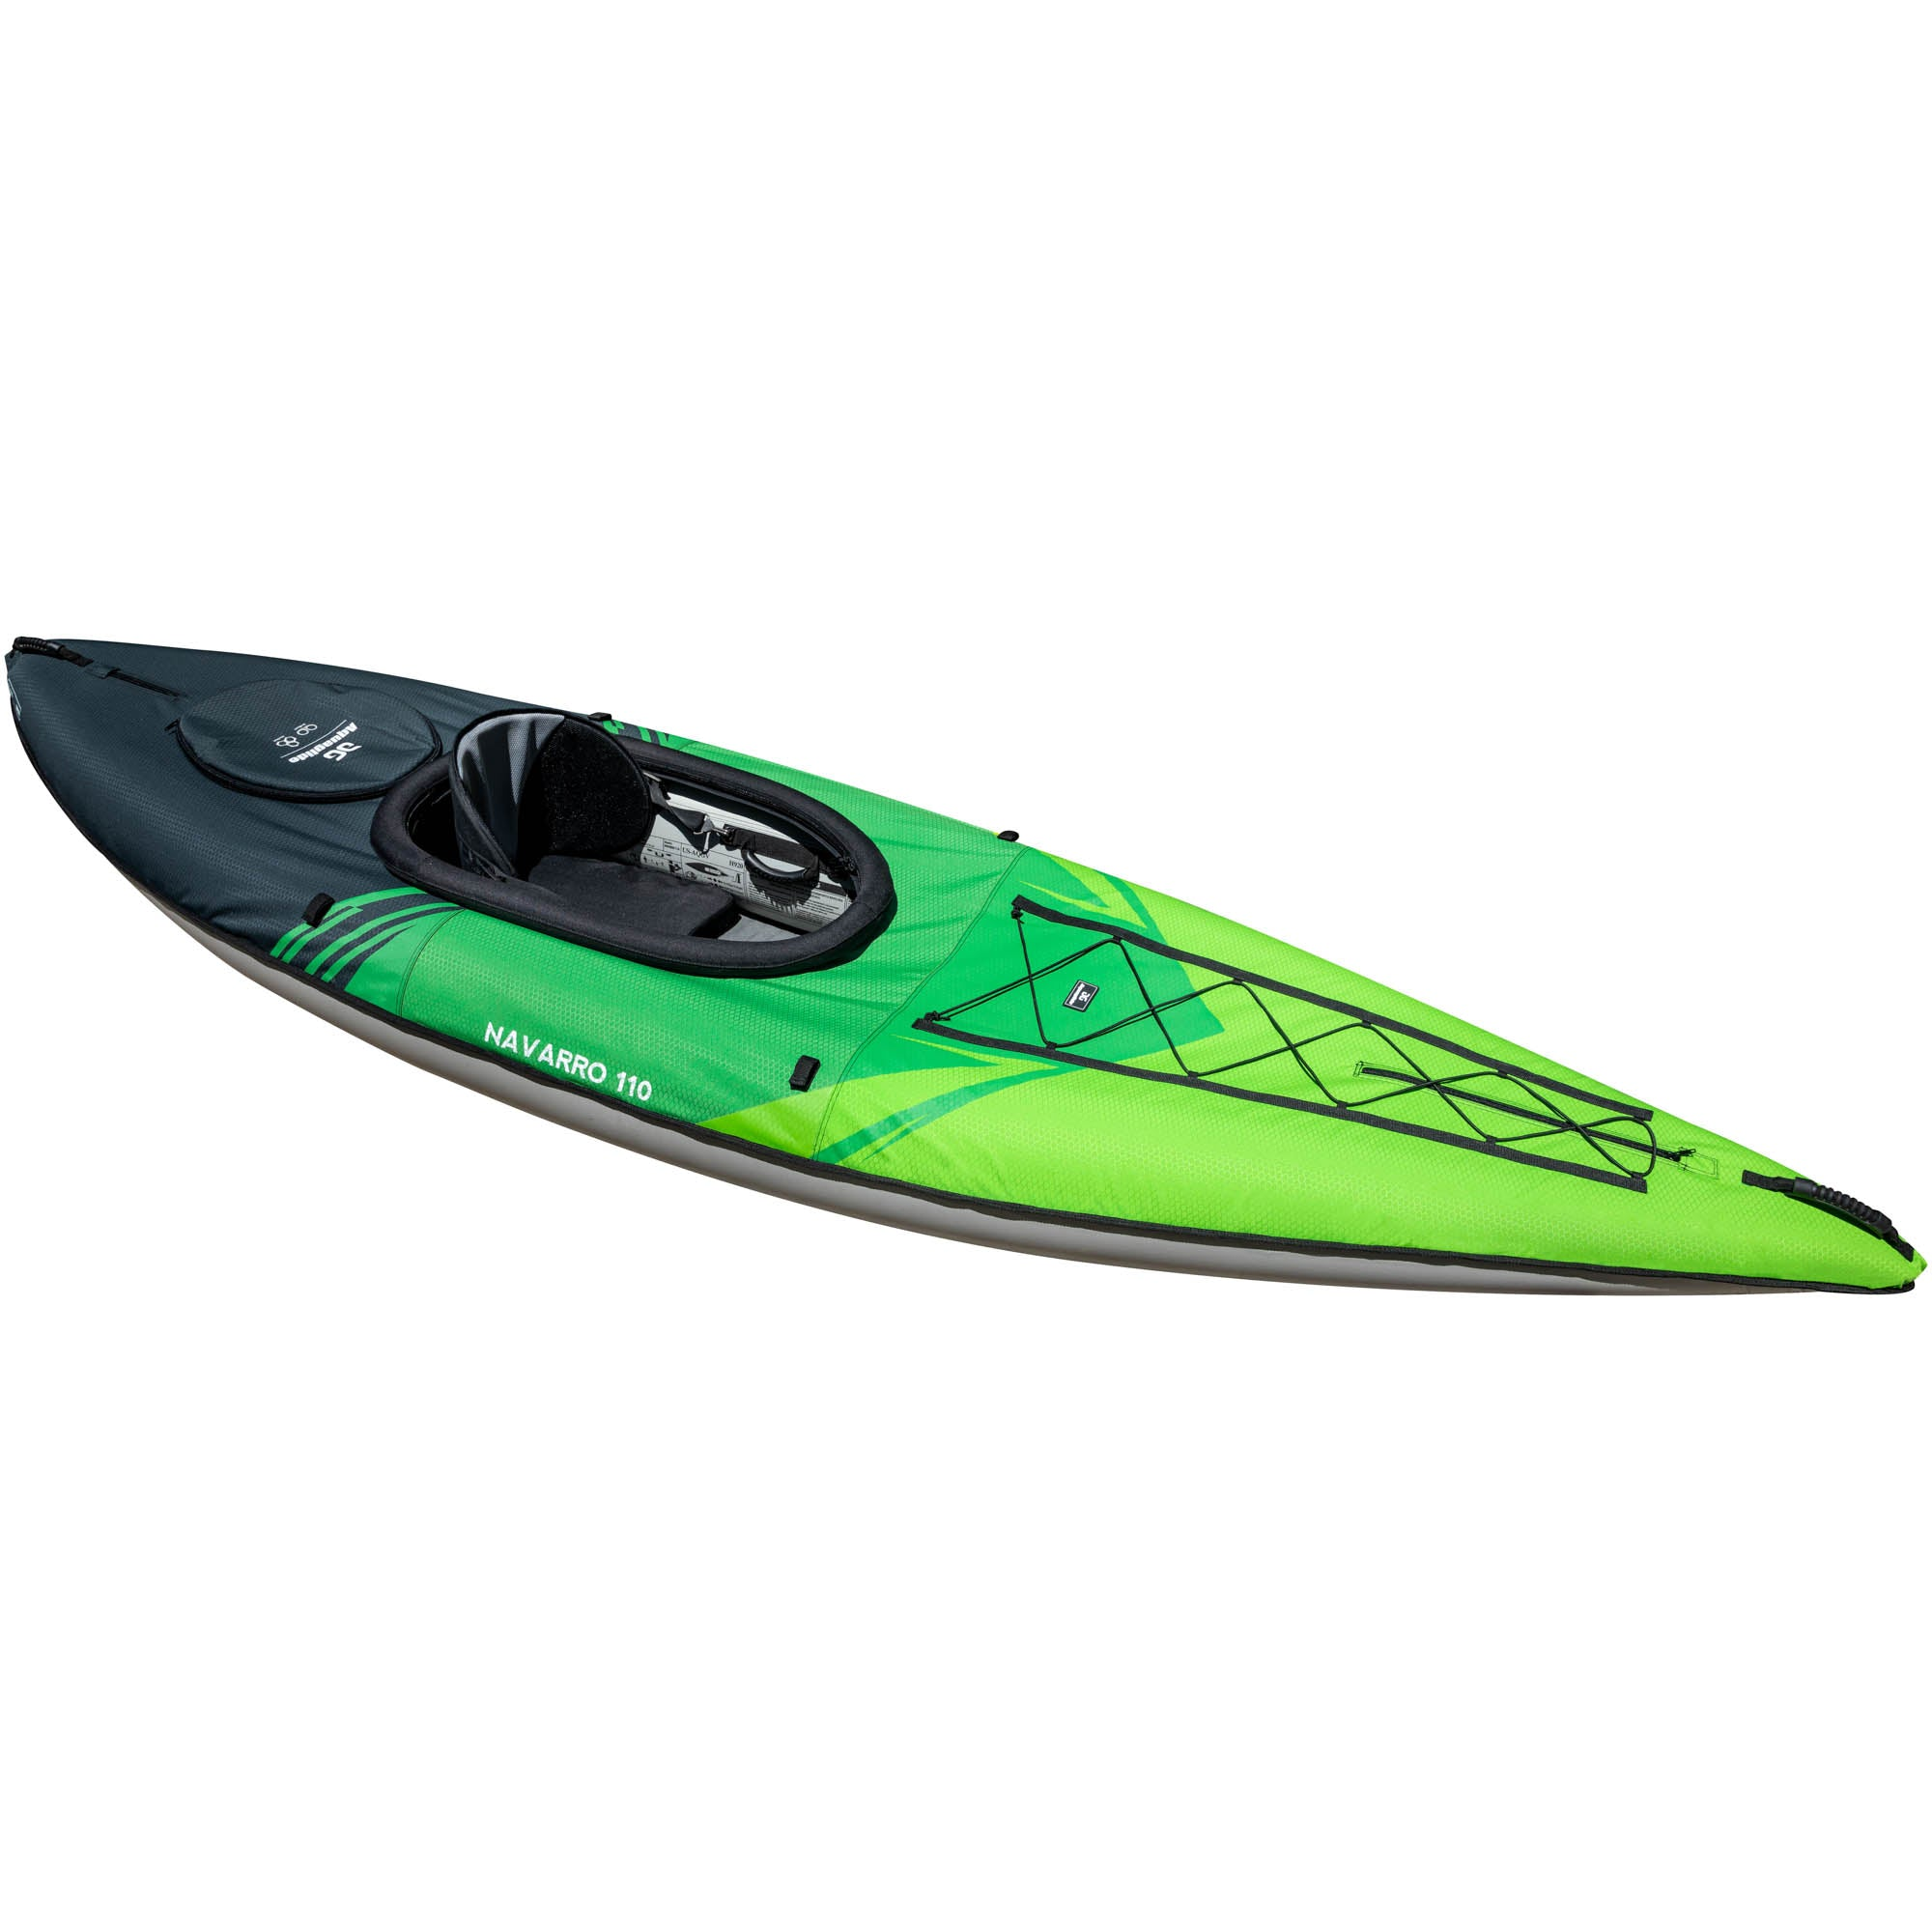 Navarro 110 Inflatable Kayak